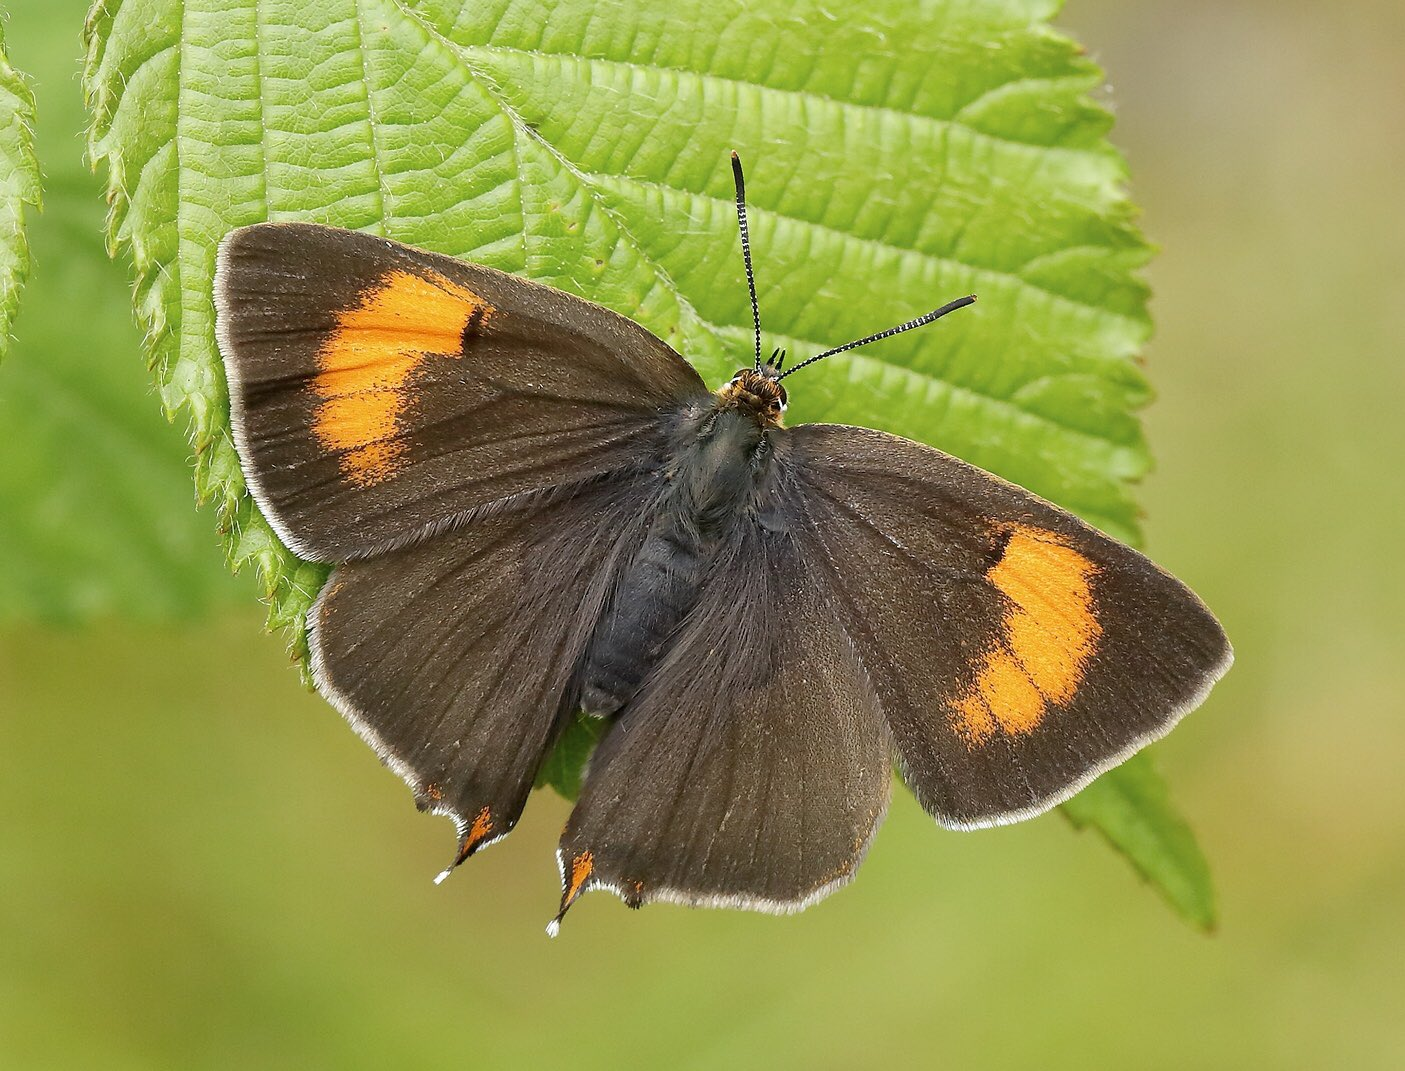 The first Brown Hairstreak (Thecla betulae) of 2019 has been reported from Surrey - earlier than average but not as early as last year (library image @IainHLeach) https://t.co/RcO4Gx7gKJ